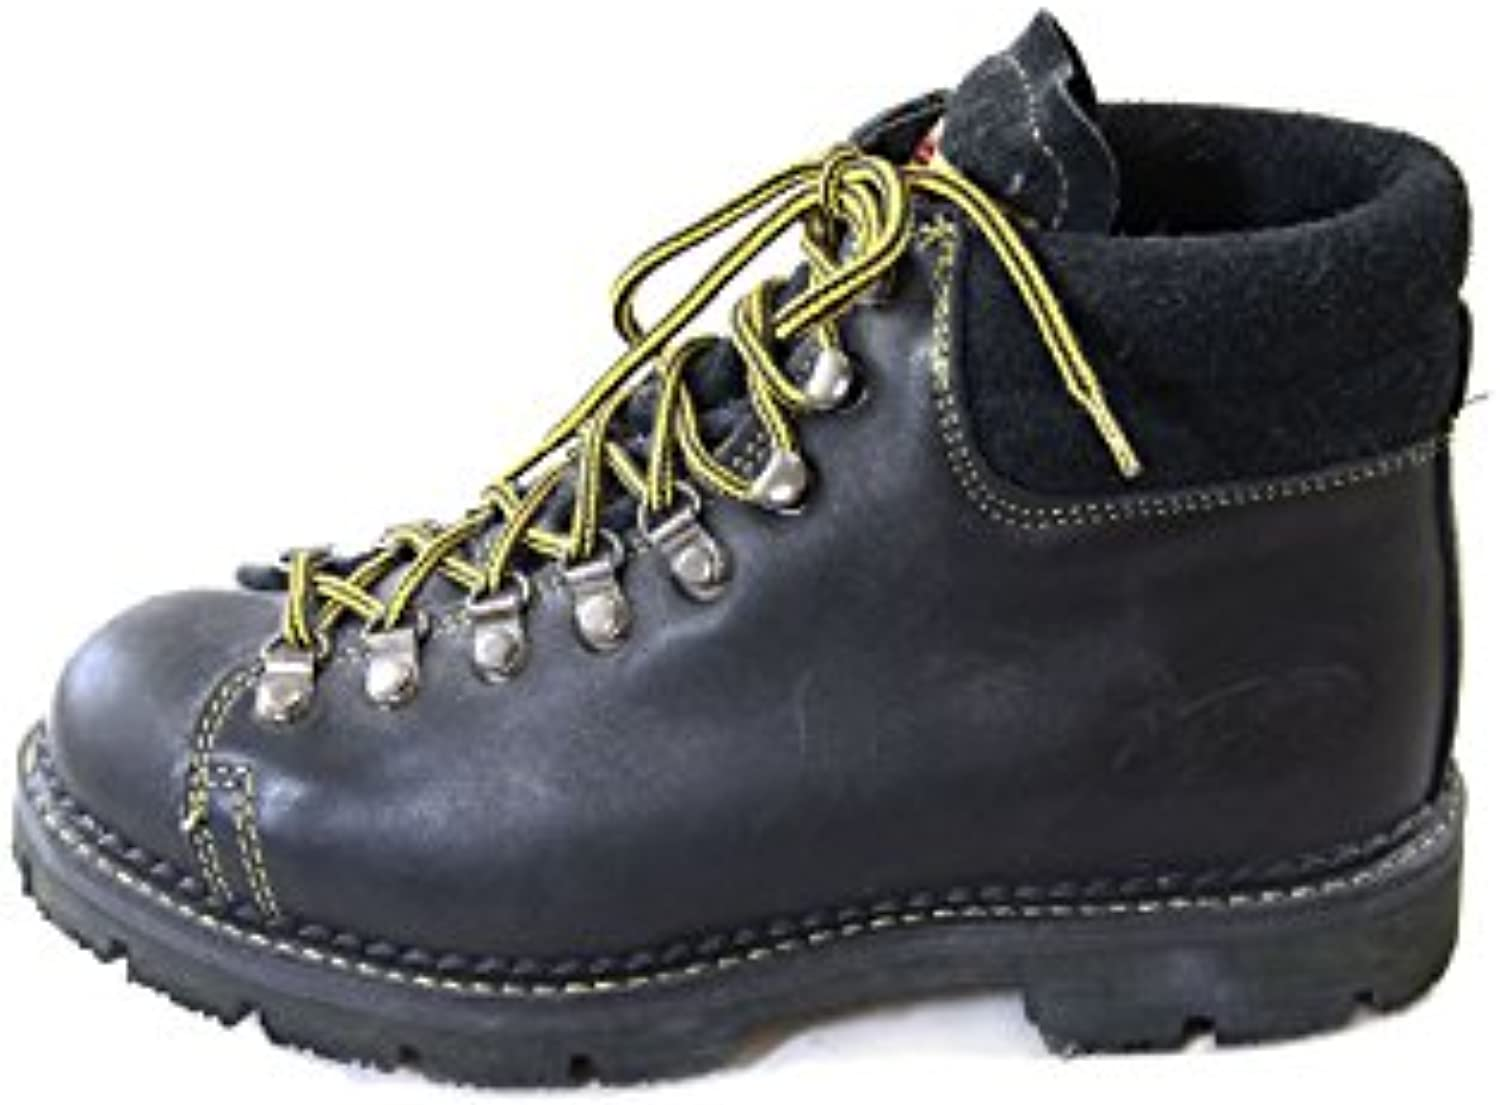 Energie Vintage Black Leather Hiker Boots with Goodyear Welt